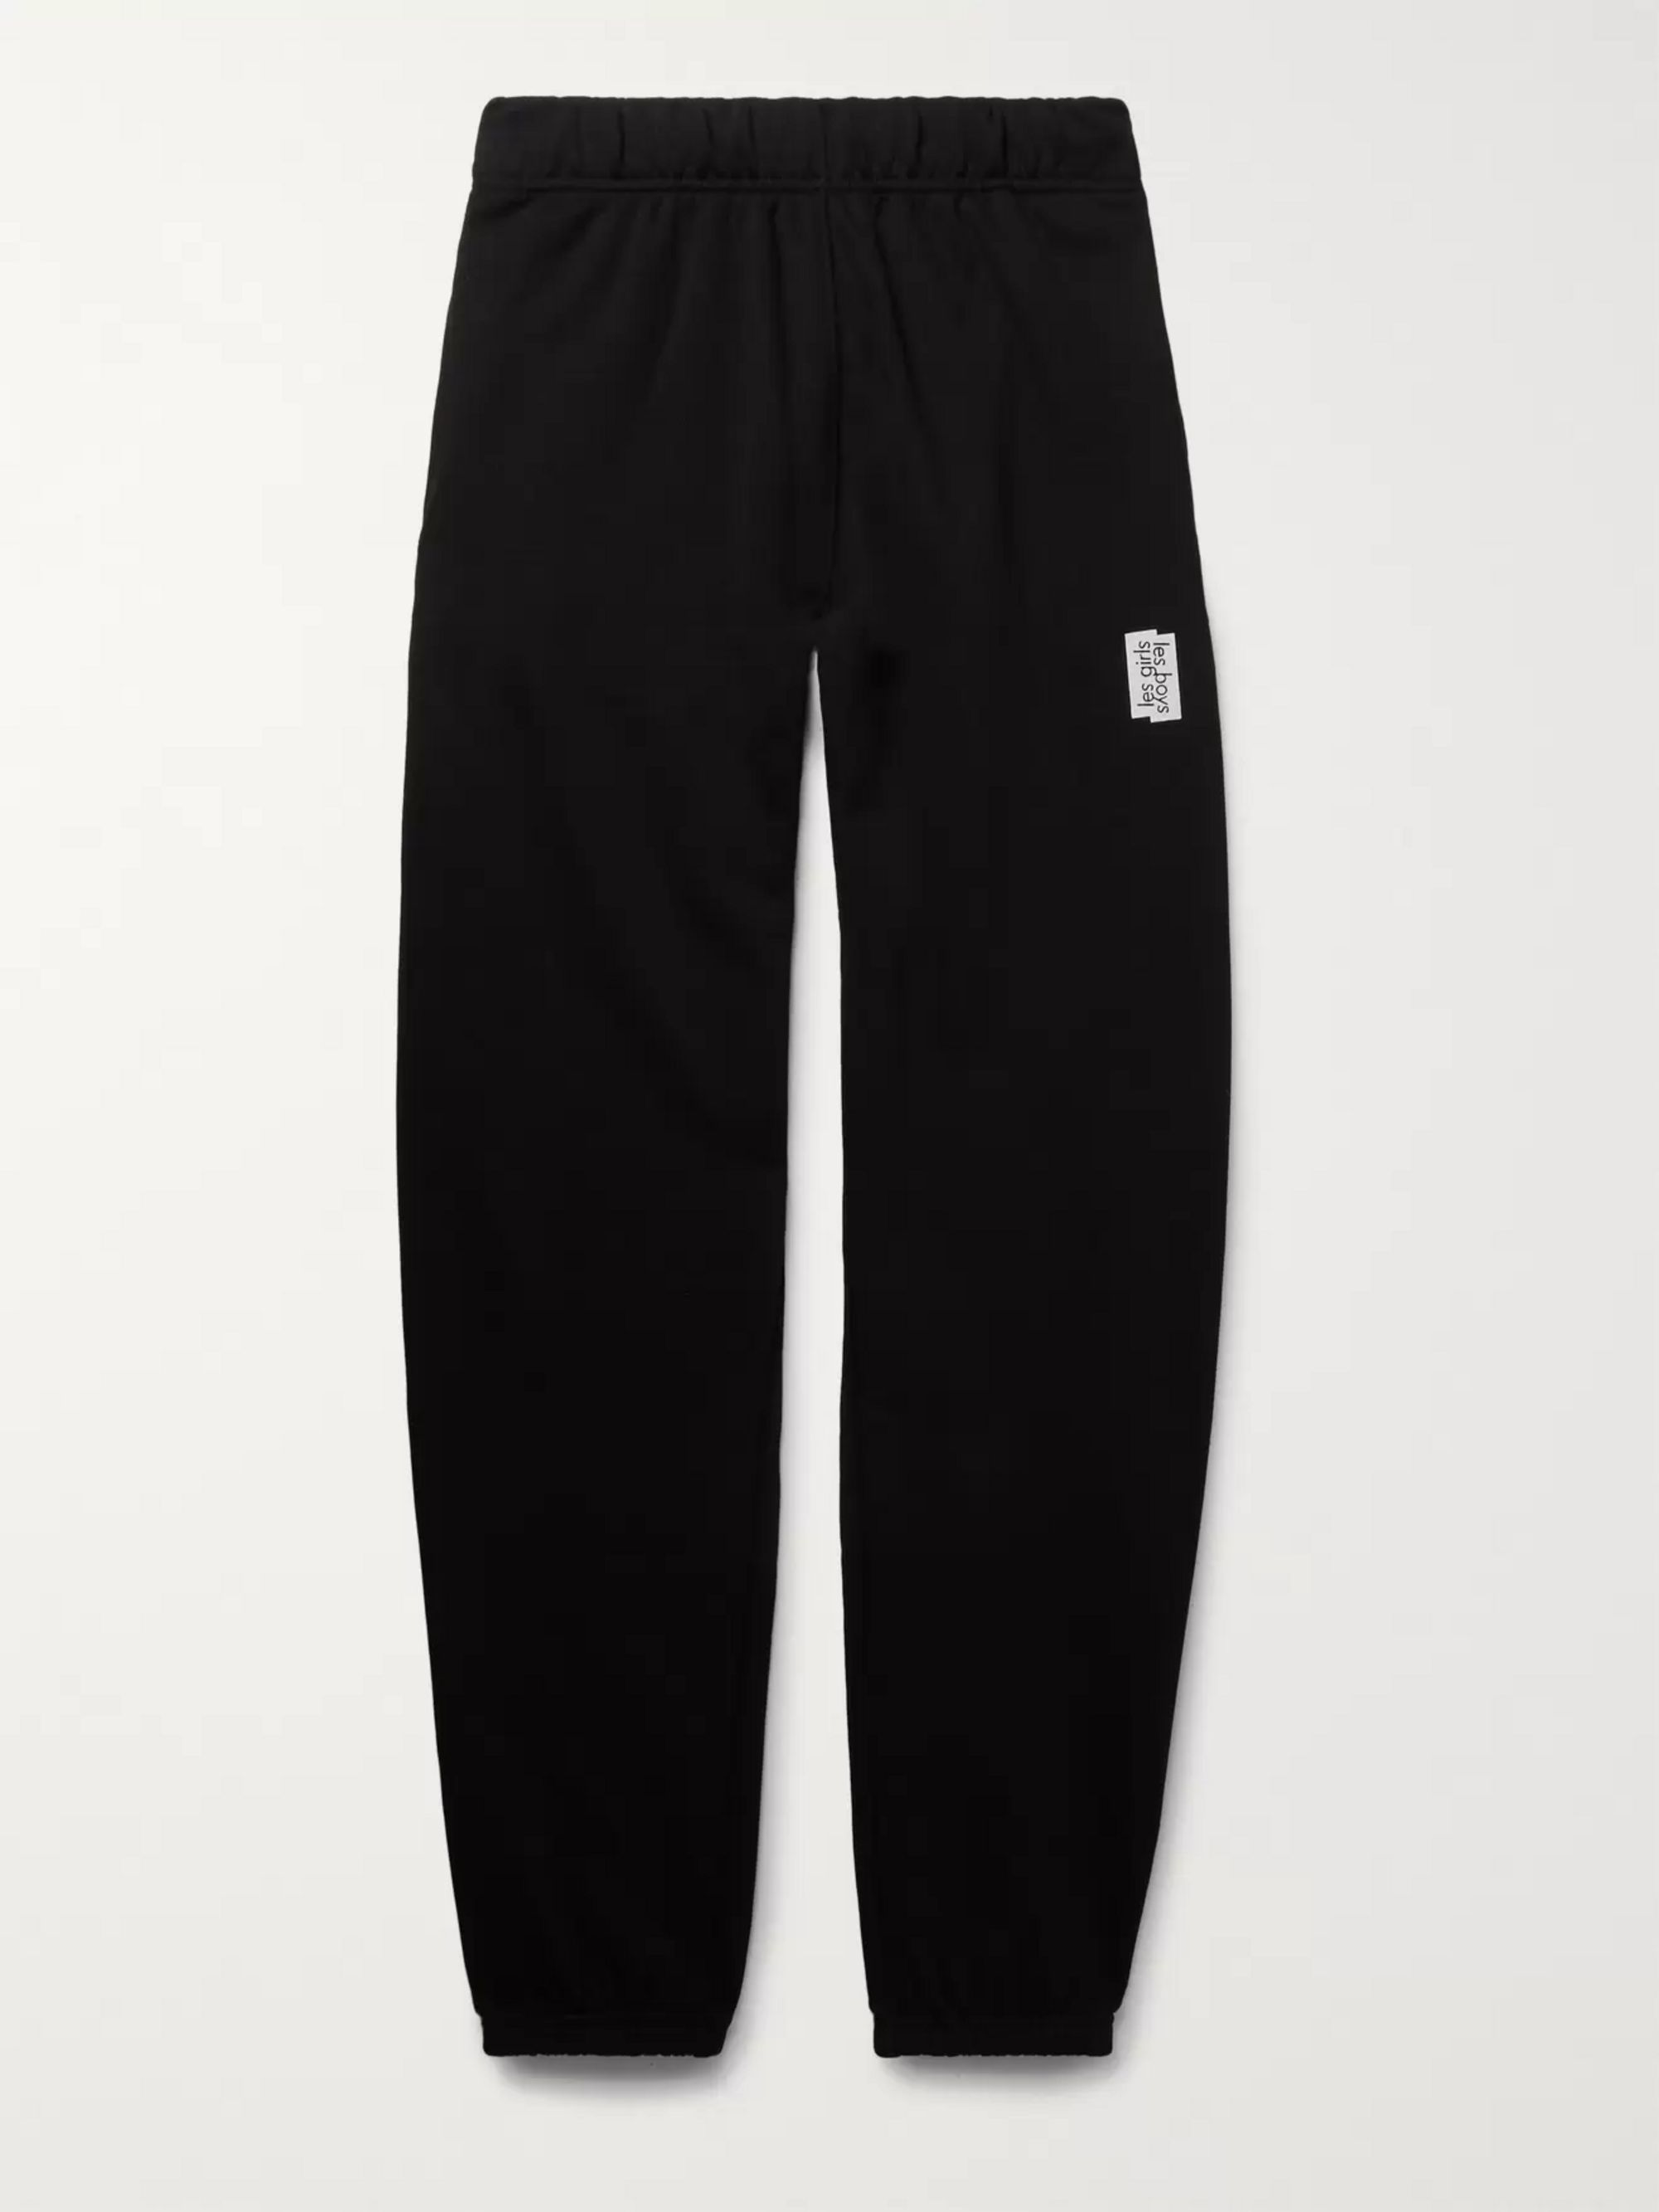 Tapered Loopback Stretch Cotton Jersey Sweatpants by Les Girls Les Boys